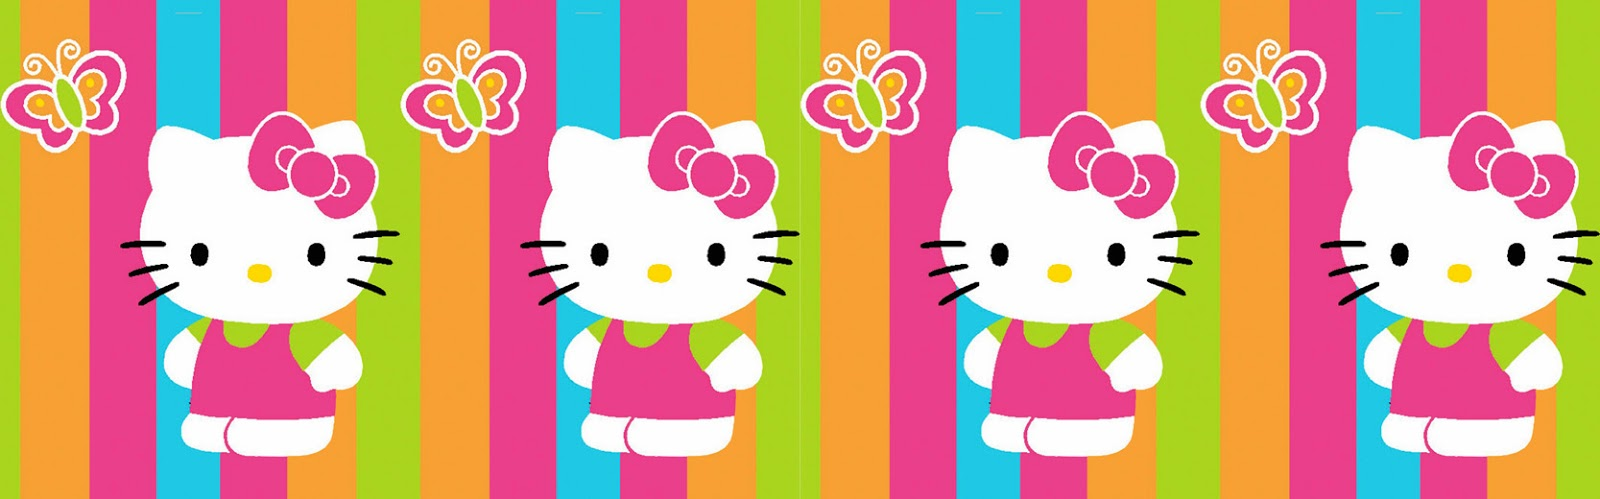 Great Wallpaper Hello Kitty Floral - 9  Perfect Image Reference_358183.jpg